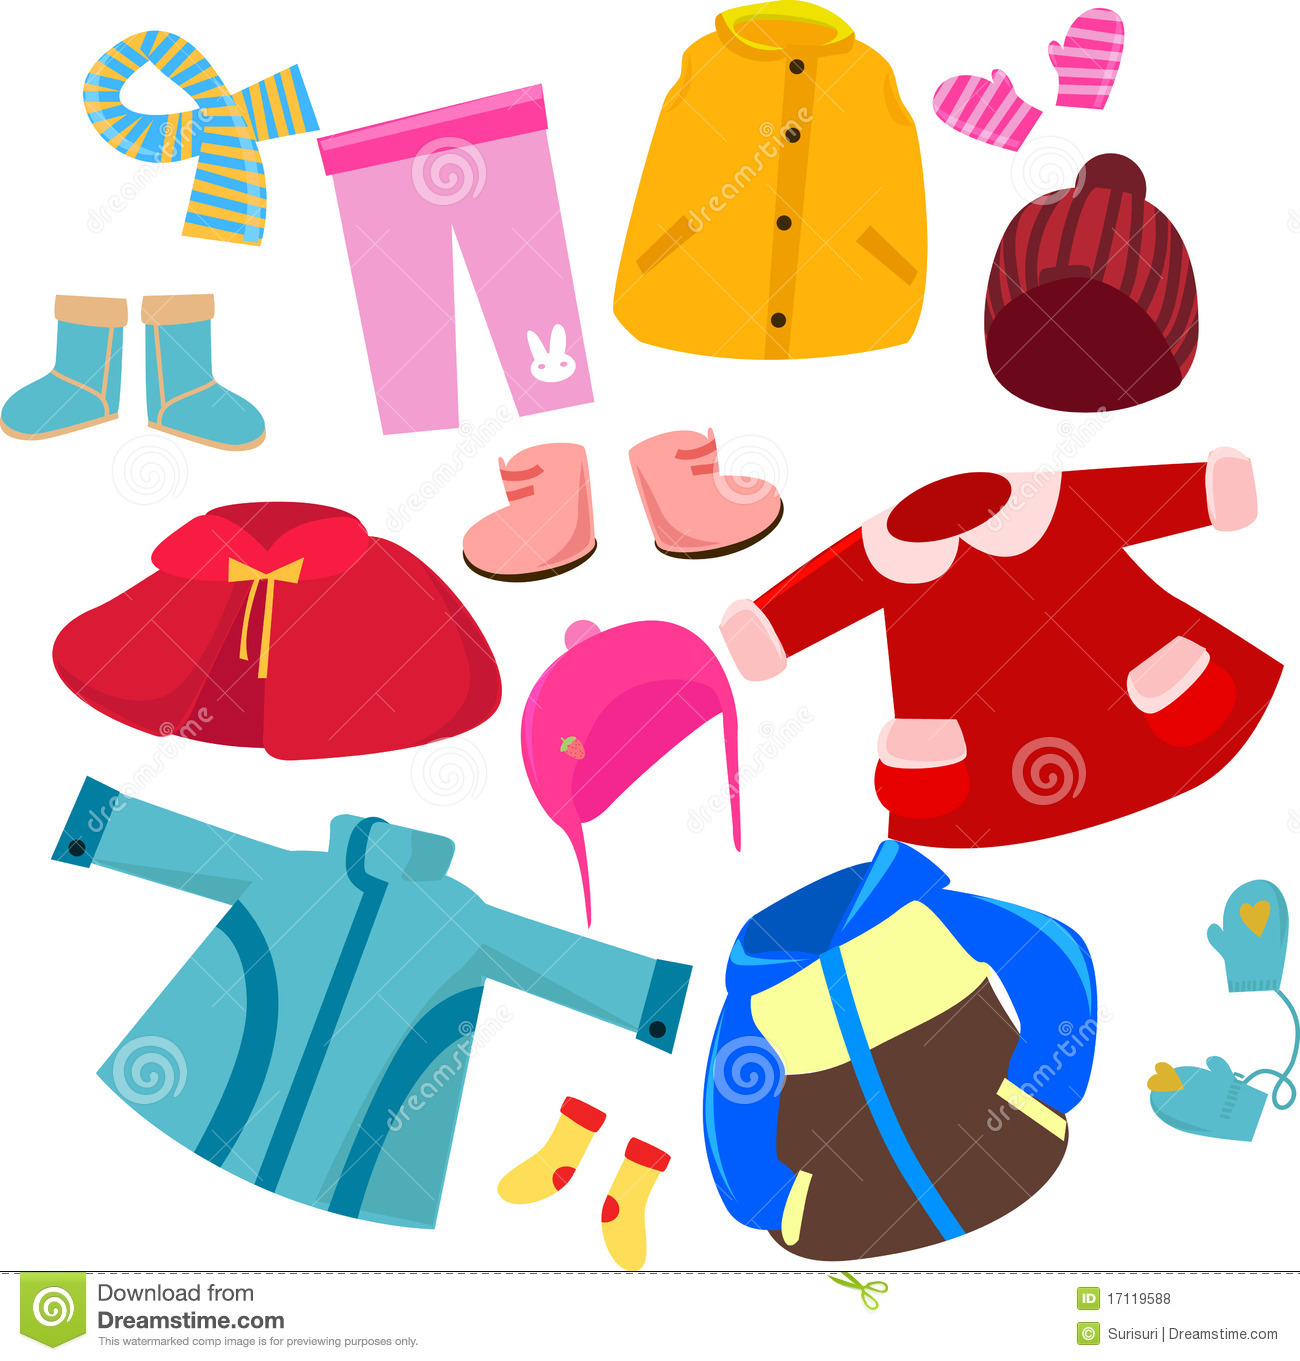 Fall Clothes Clip Art Clothes Set-Fall Clothes Clip Art Clothes Set-14